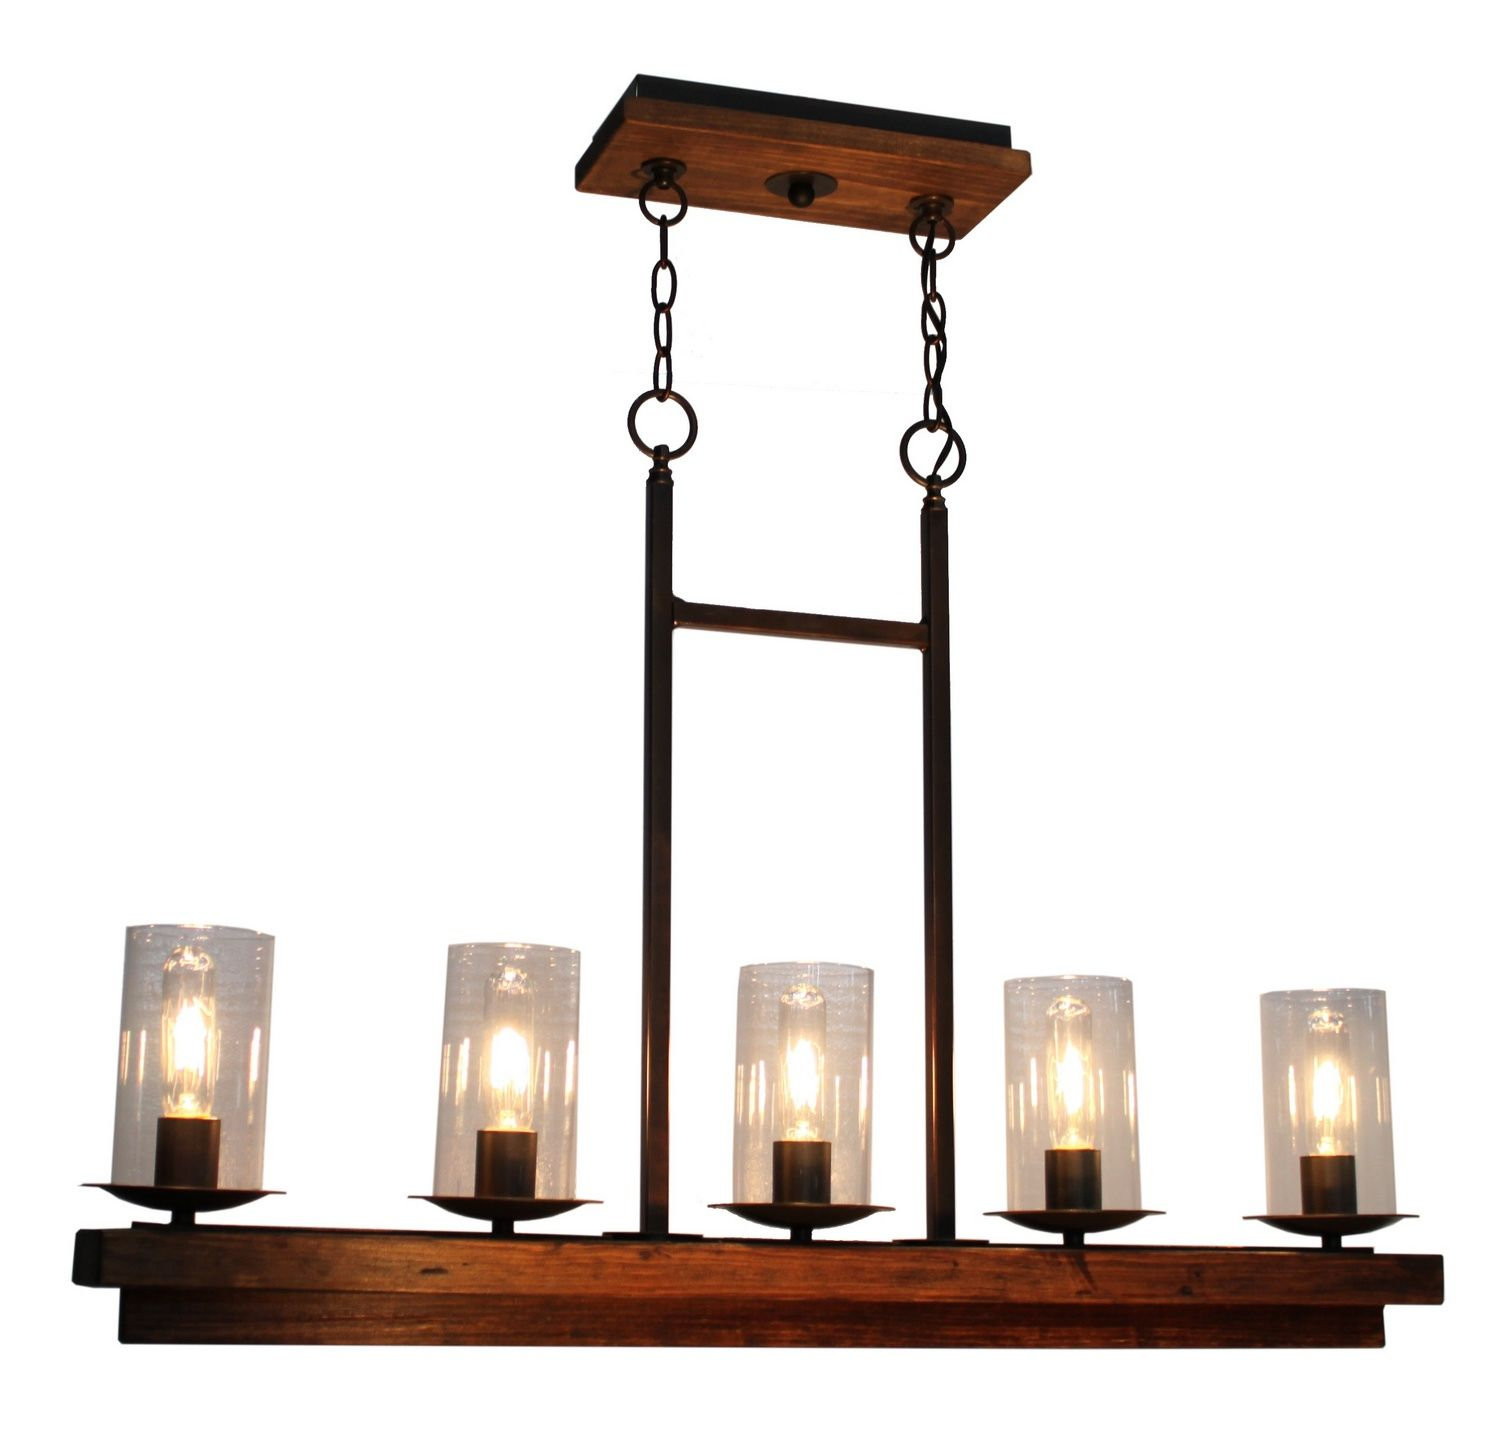 Five Light Island Pendant The Legno Rustico which means rustic wood